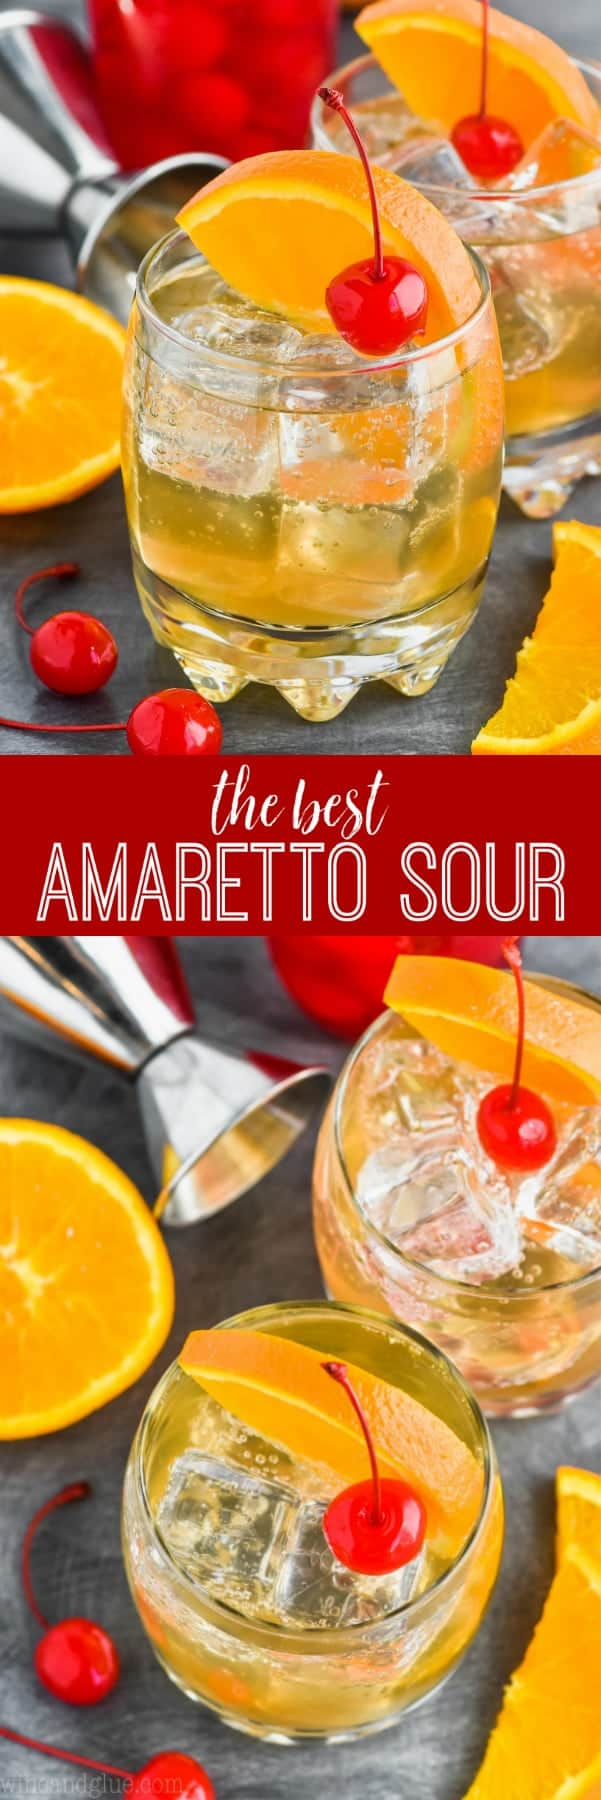 collage of amaretto sour recipe